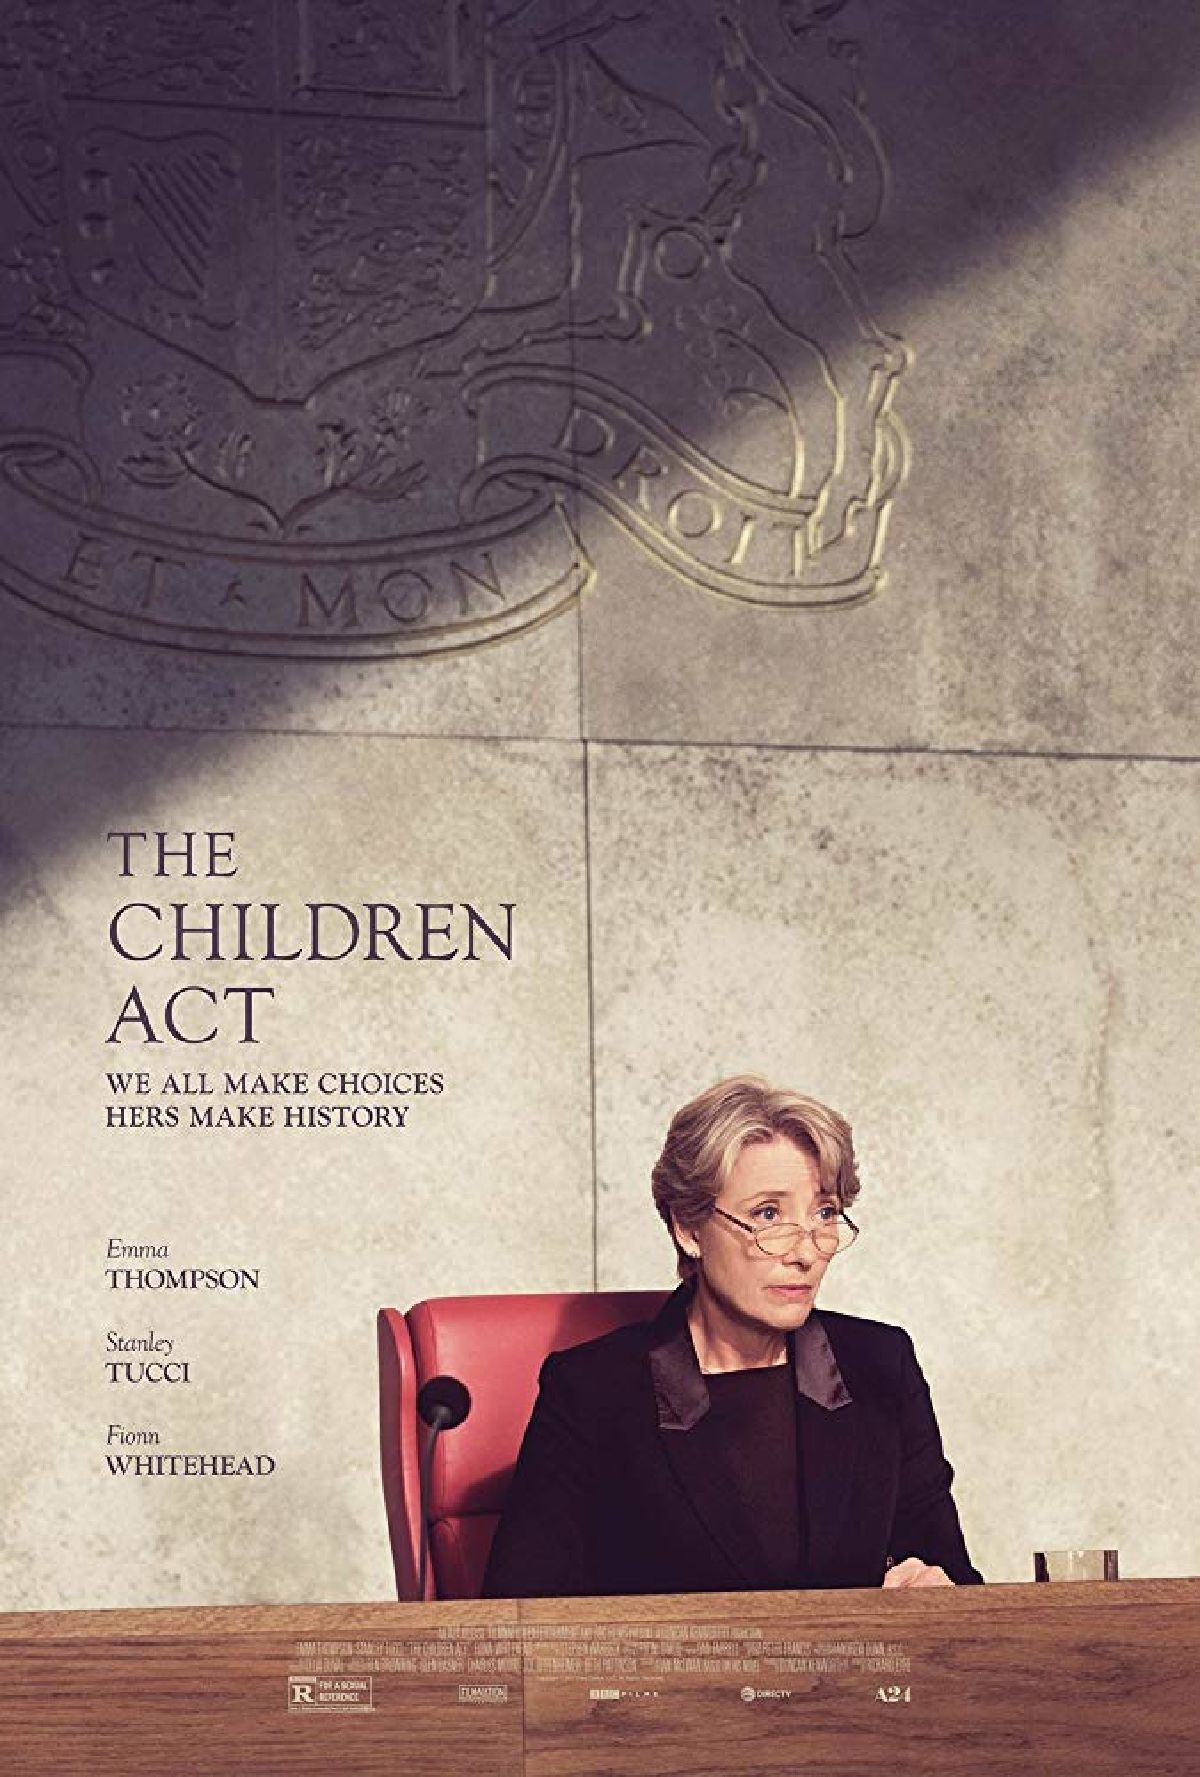 'The Children Act' movie poster